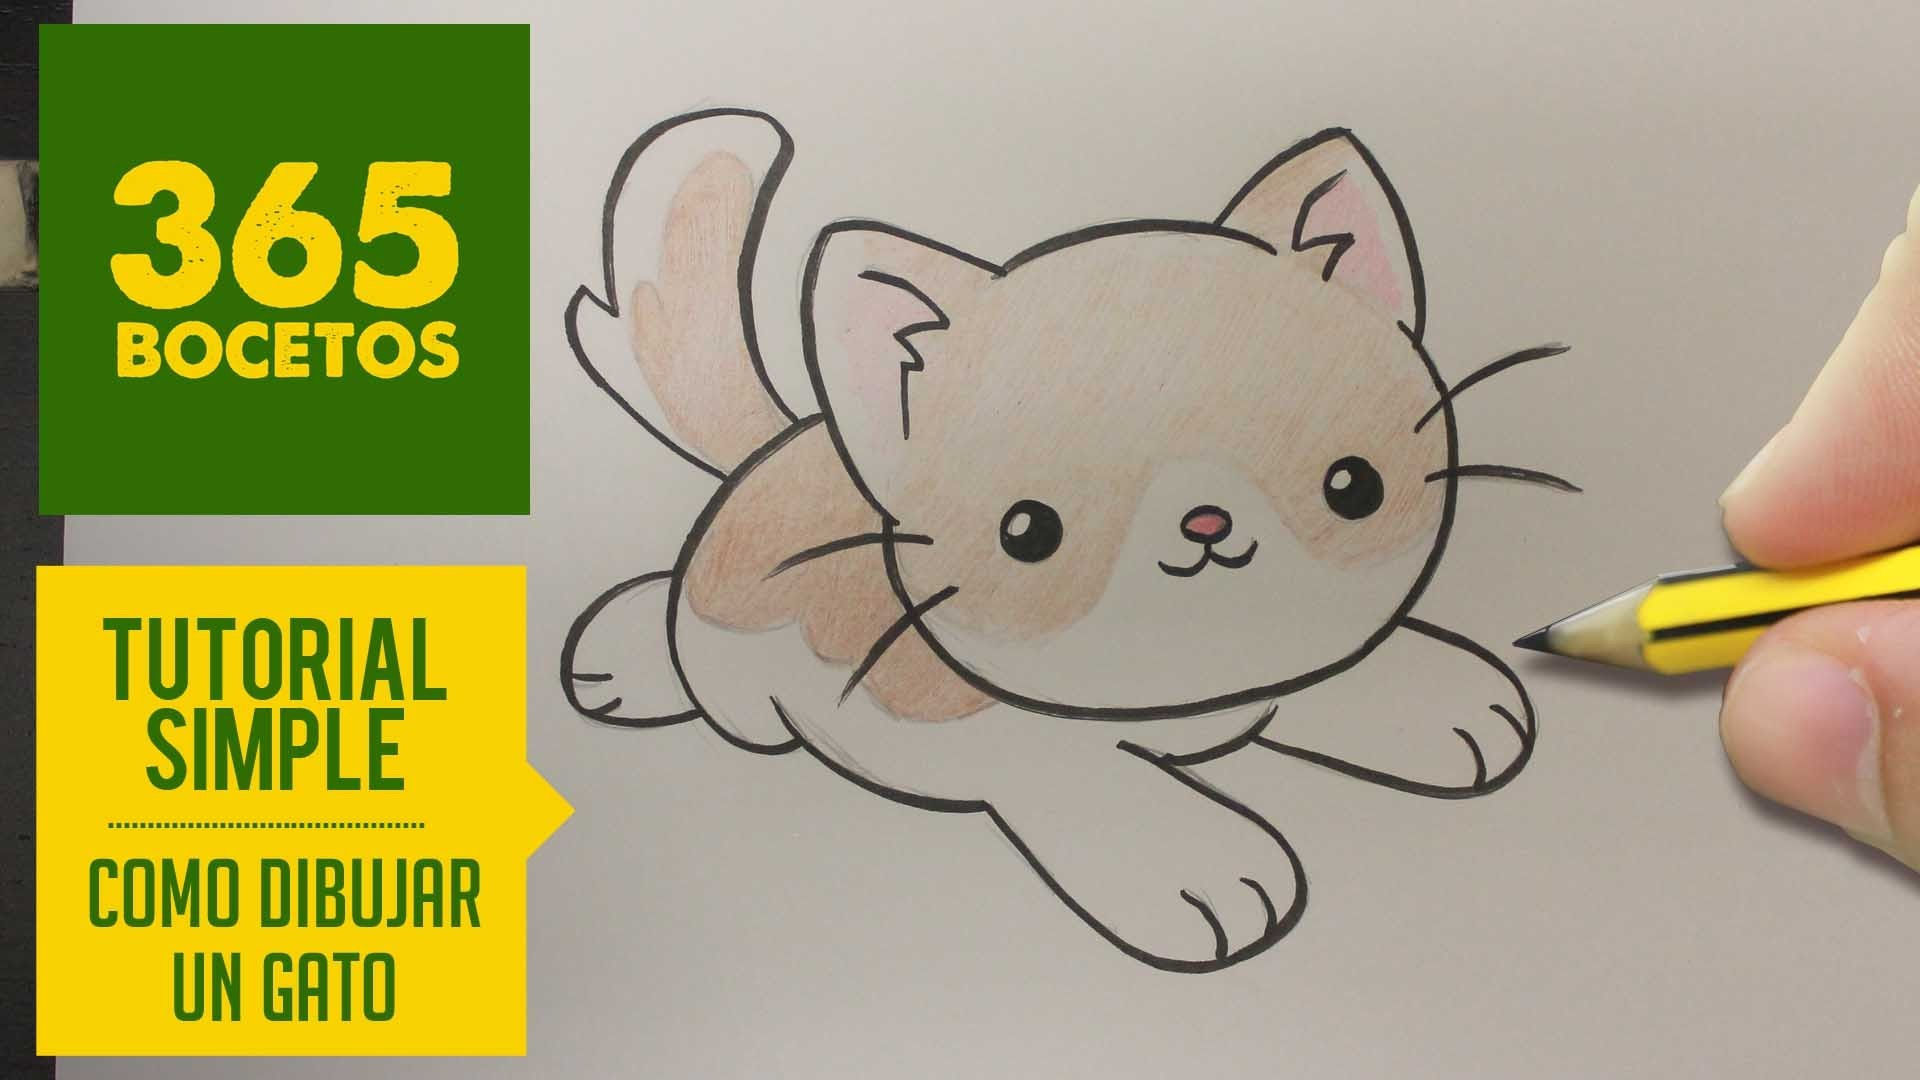 COMO DIBUJAR UN GATO KAWAII PASO A PASO - Dibujos kawaii faciles - How to draw a cat